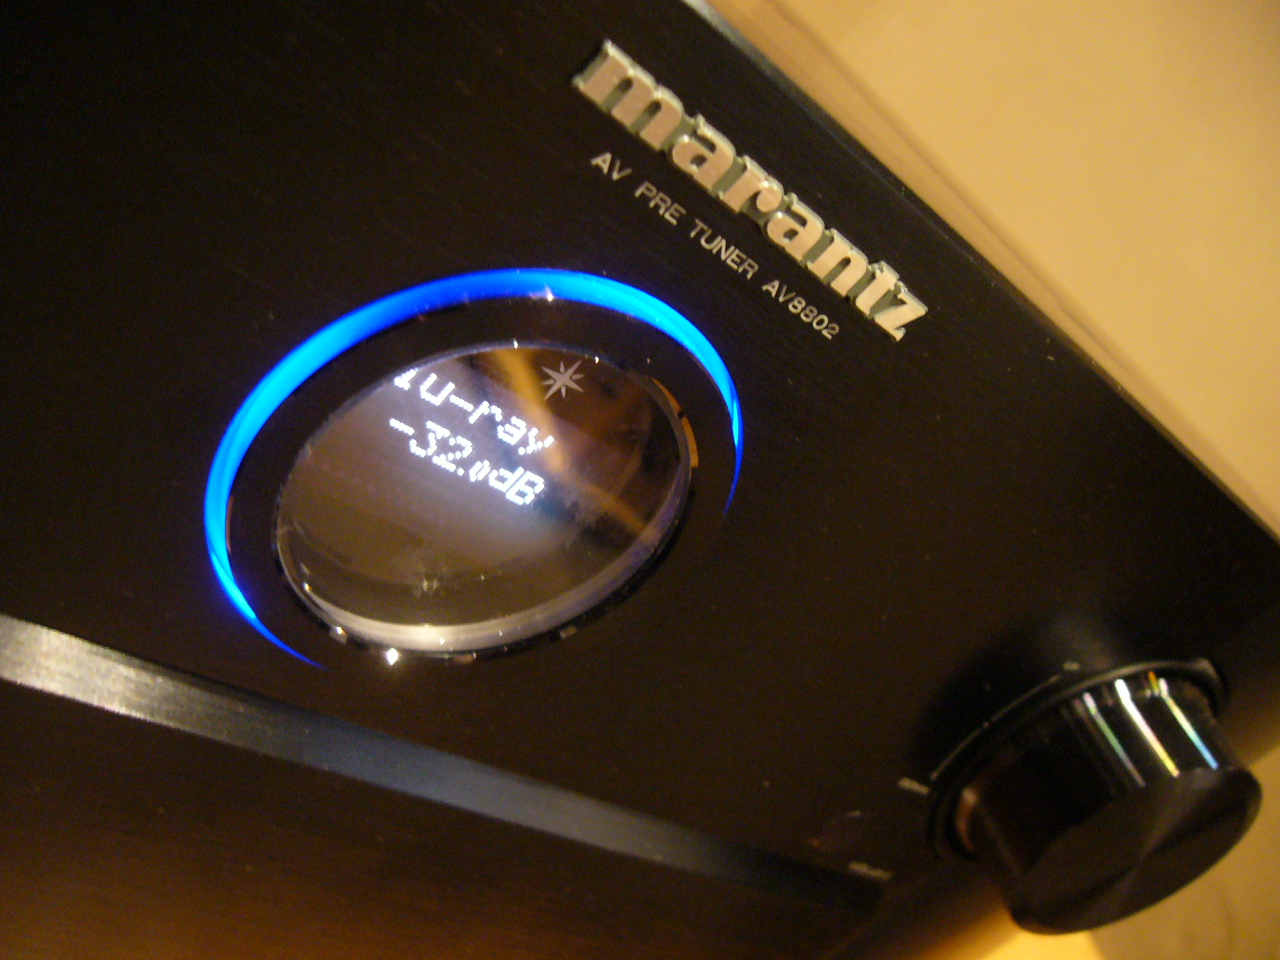 Later we will move up to the flagship Marantz  AV8802  processor &  MM8077  power amp running a 5.1.2 Dolby Atmos setup.